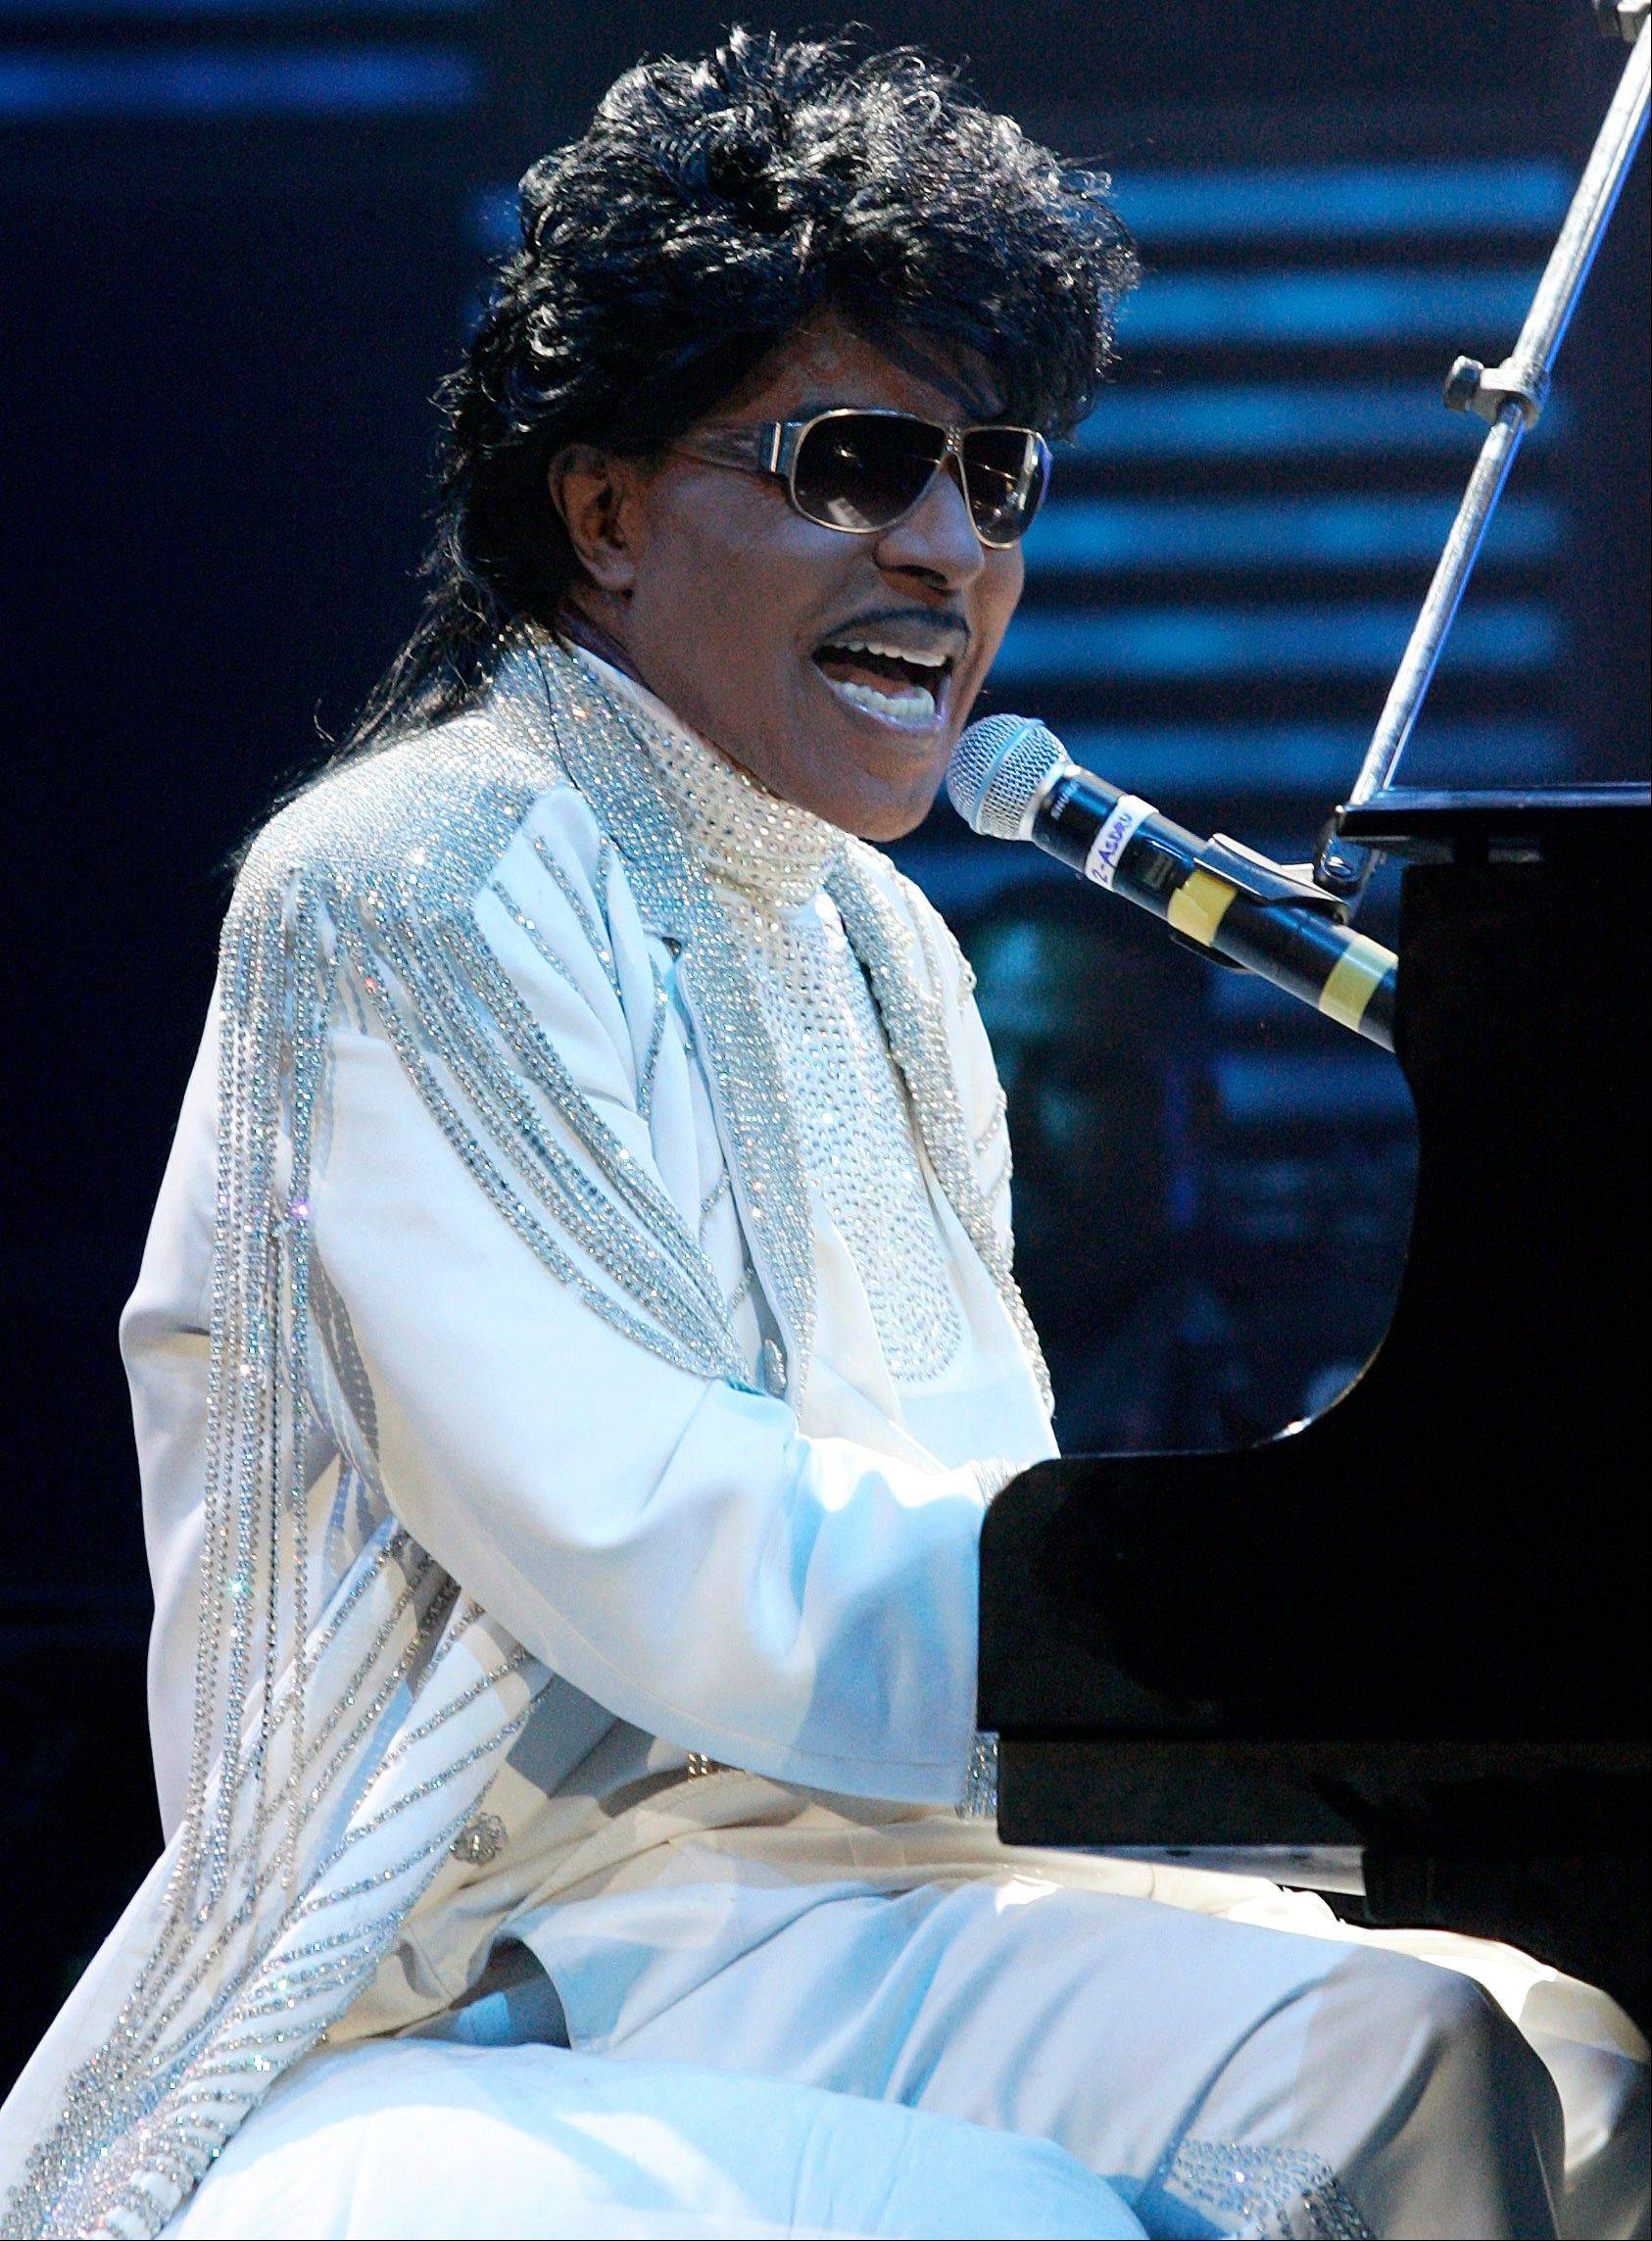 Macon, Ga. officials say they plan to move the boyhood home of Little Richard to spare it from a highway construction project. Mayor Robert Reichert and others made the announcement as the 80-year-old Rock and Roll Hall of Fame inductee was scheduled to receive an honorary degree Saturday from Mercer University.